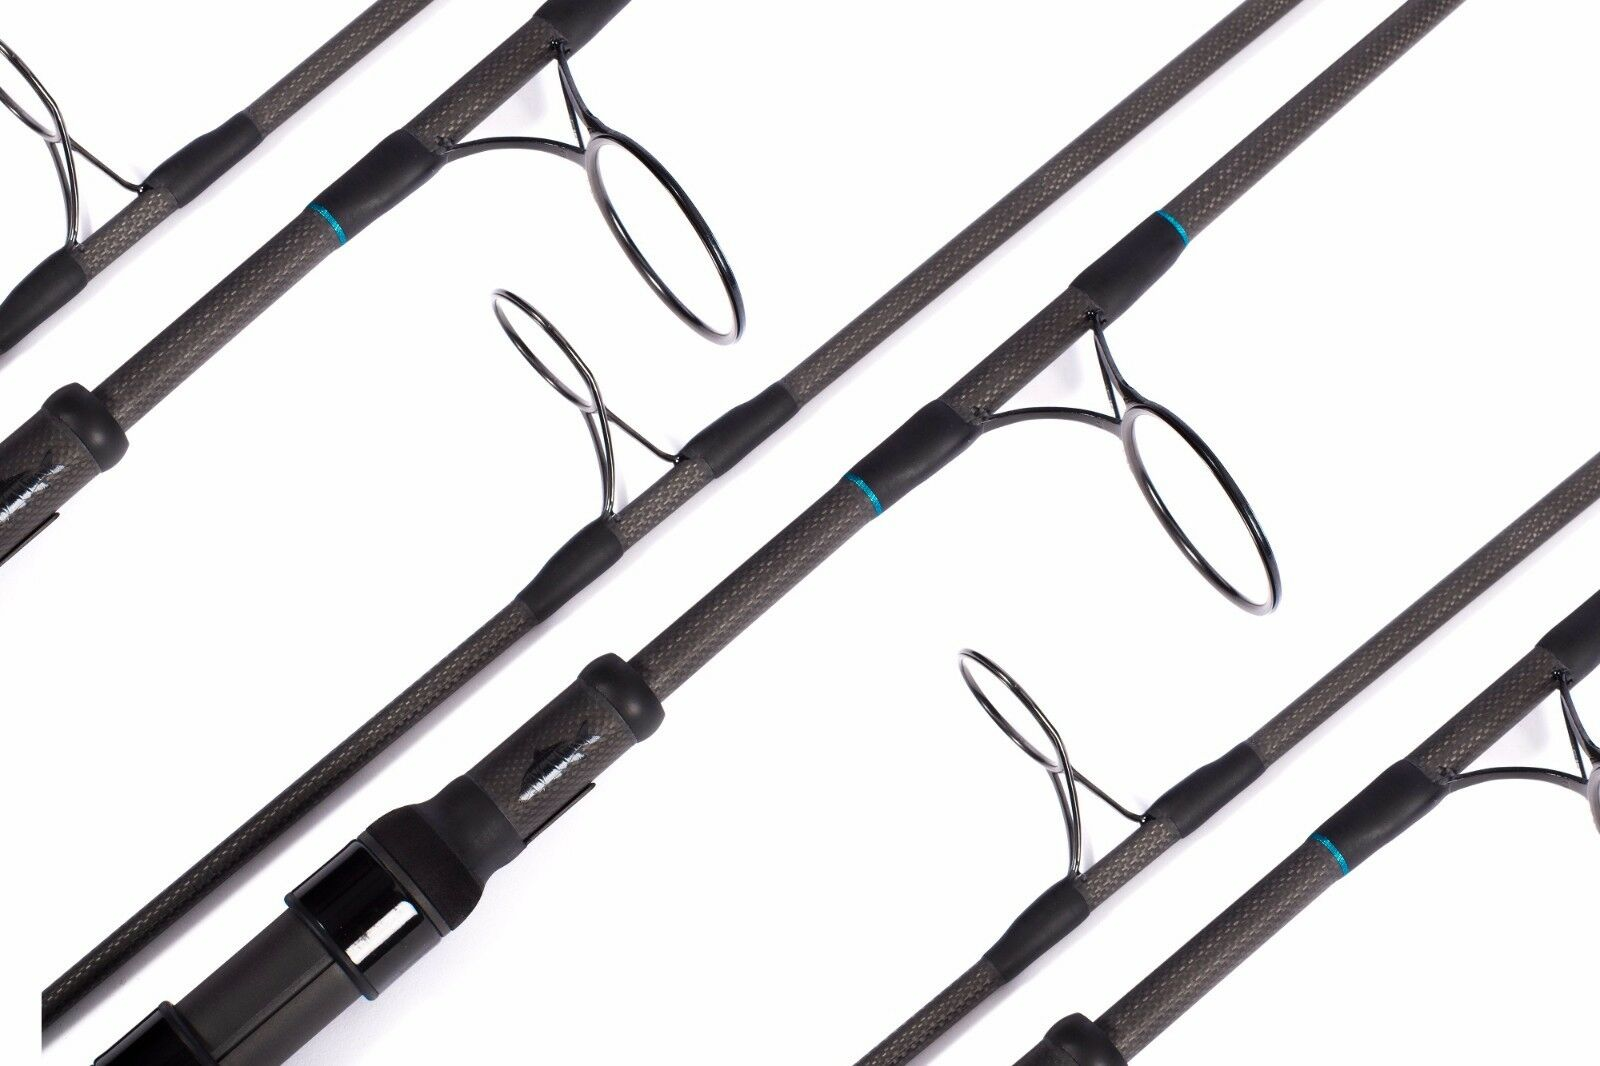 Nash 3x TT Scope Shrink Handle 50mm Carp Rod 50mm Handle Butt Ring Exclusive Model f4a320